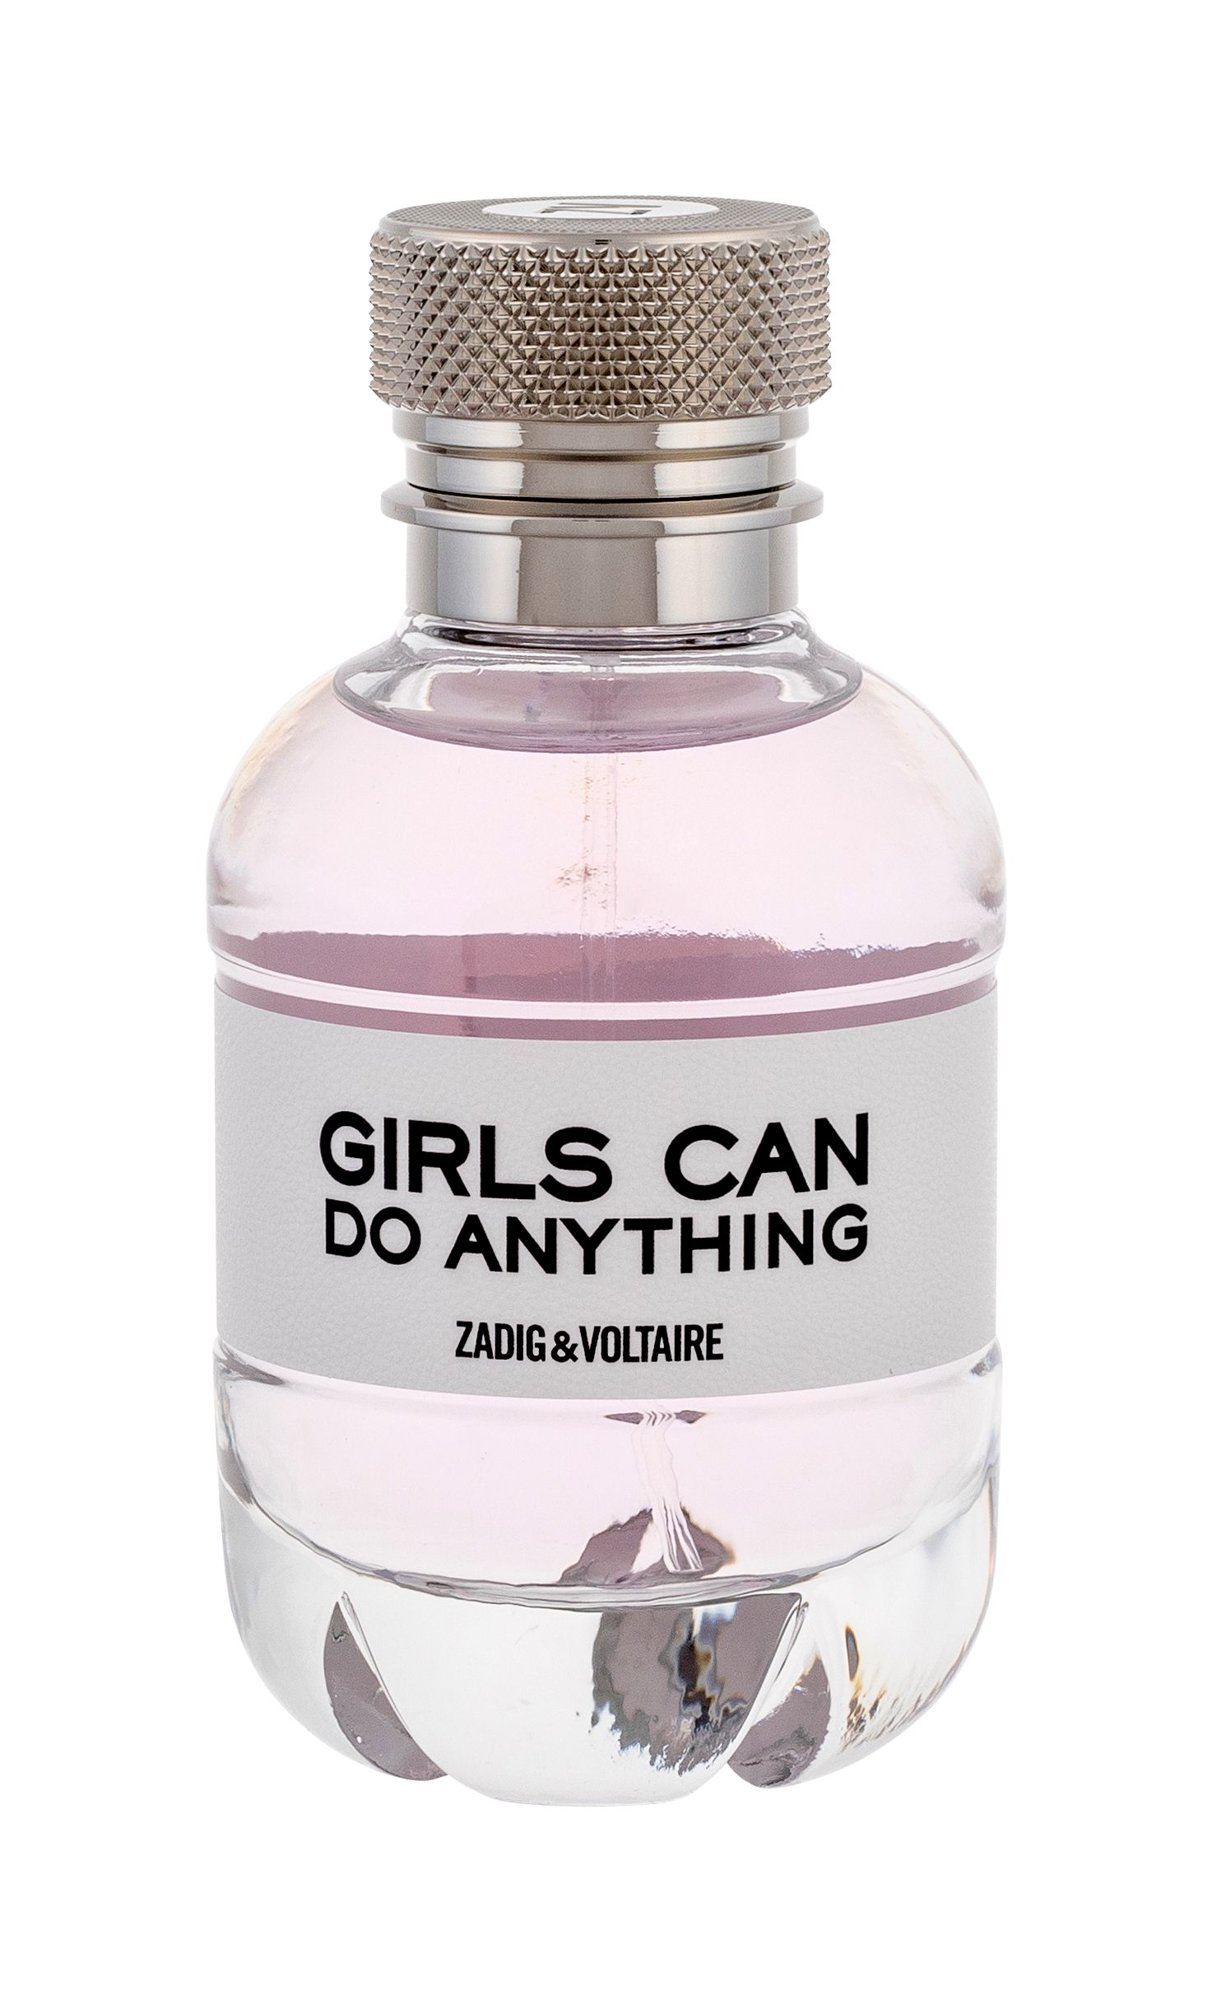 Zadig & Voltaire Girls Can Do Anything Eau de Parfum 50ml